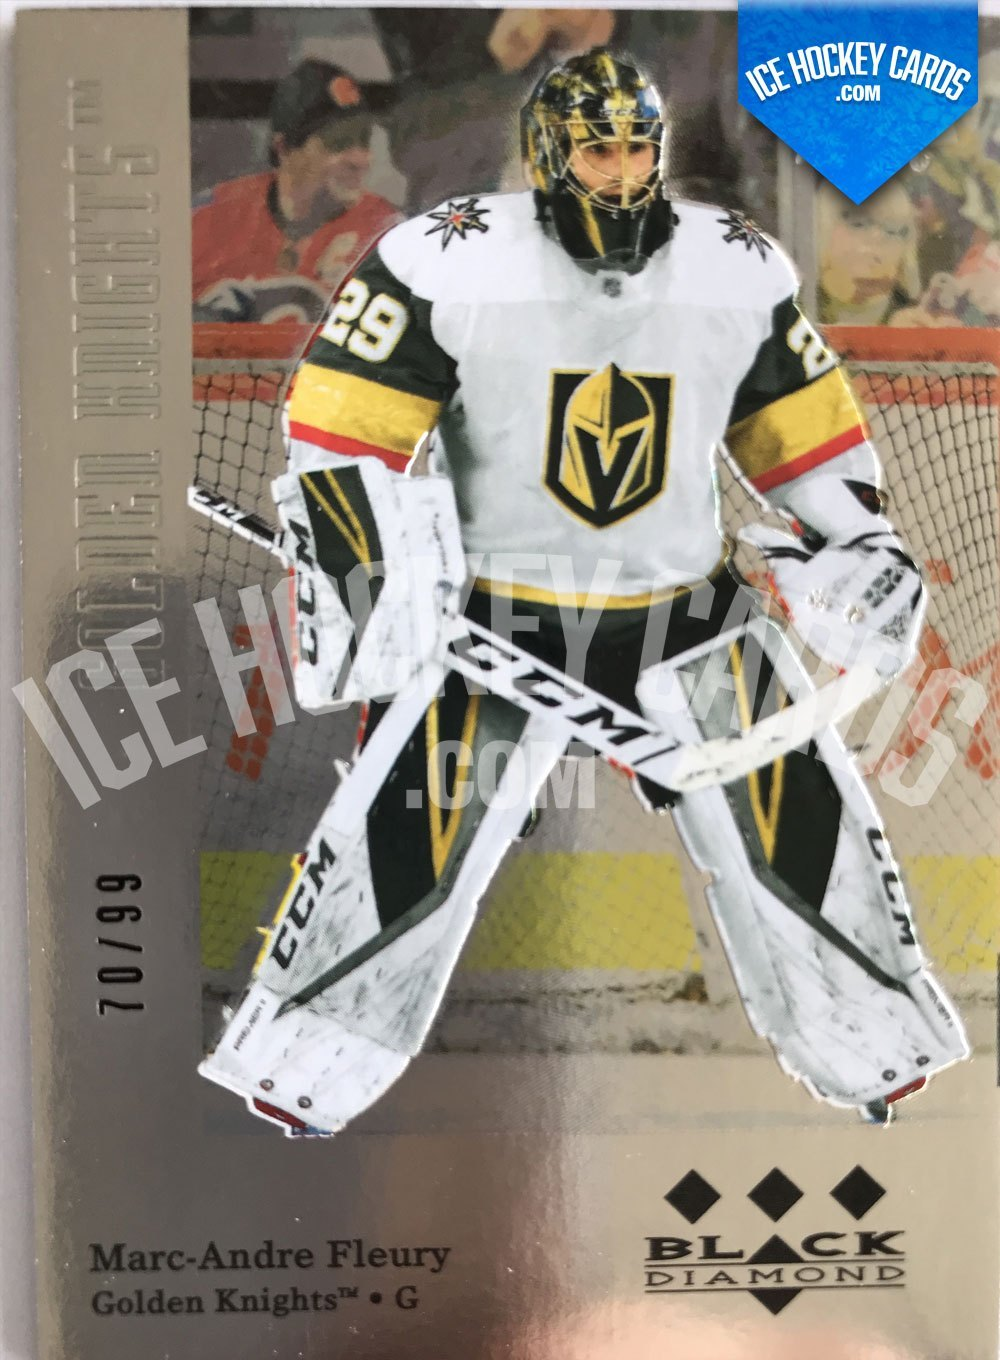 Upper Deck - Black Diamond 19-20 - Marc-Andre Fleury Retro Tribute Card